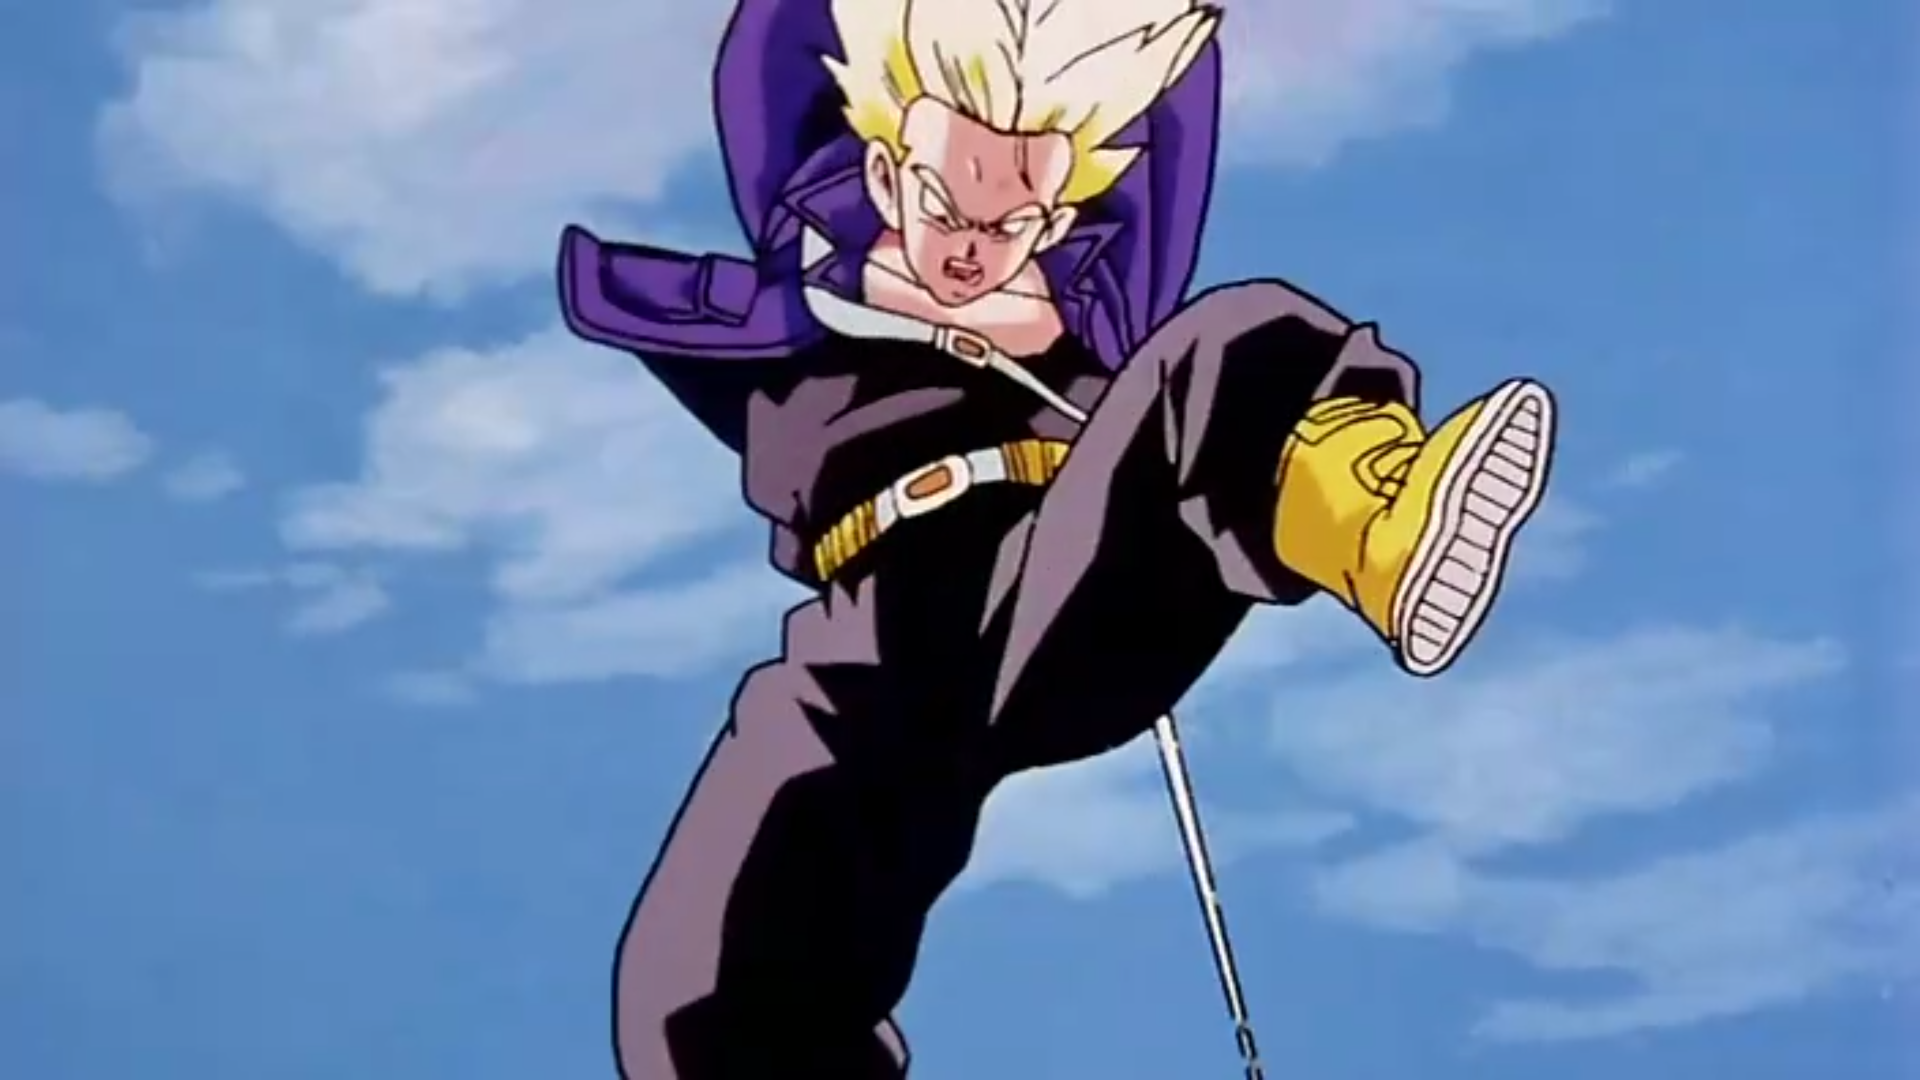 EYW.99 Trunks, 1920x1080 px Trunks Pics